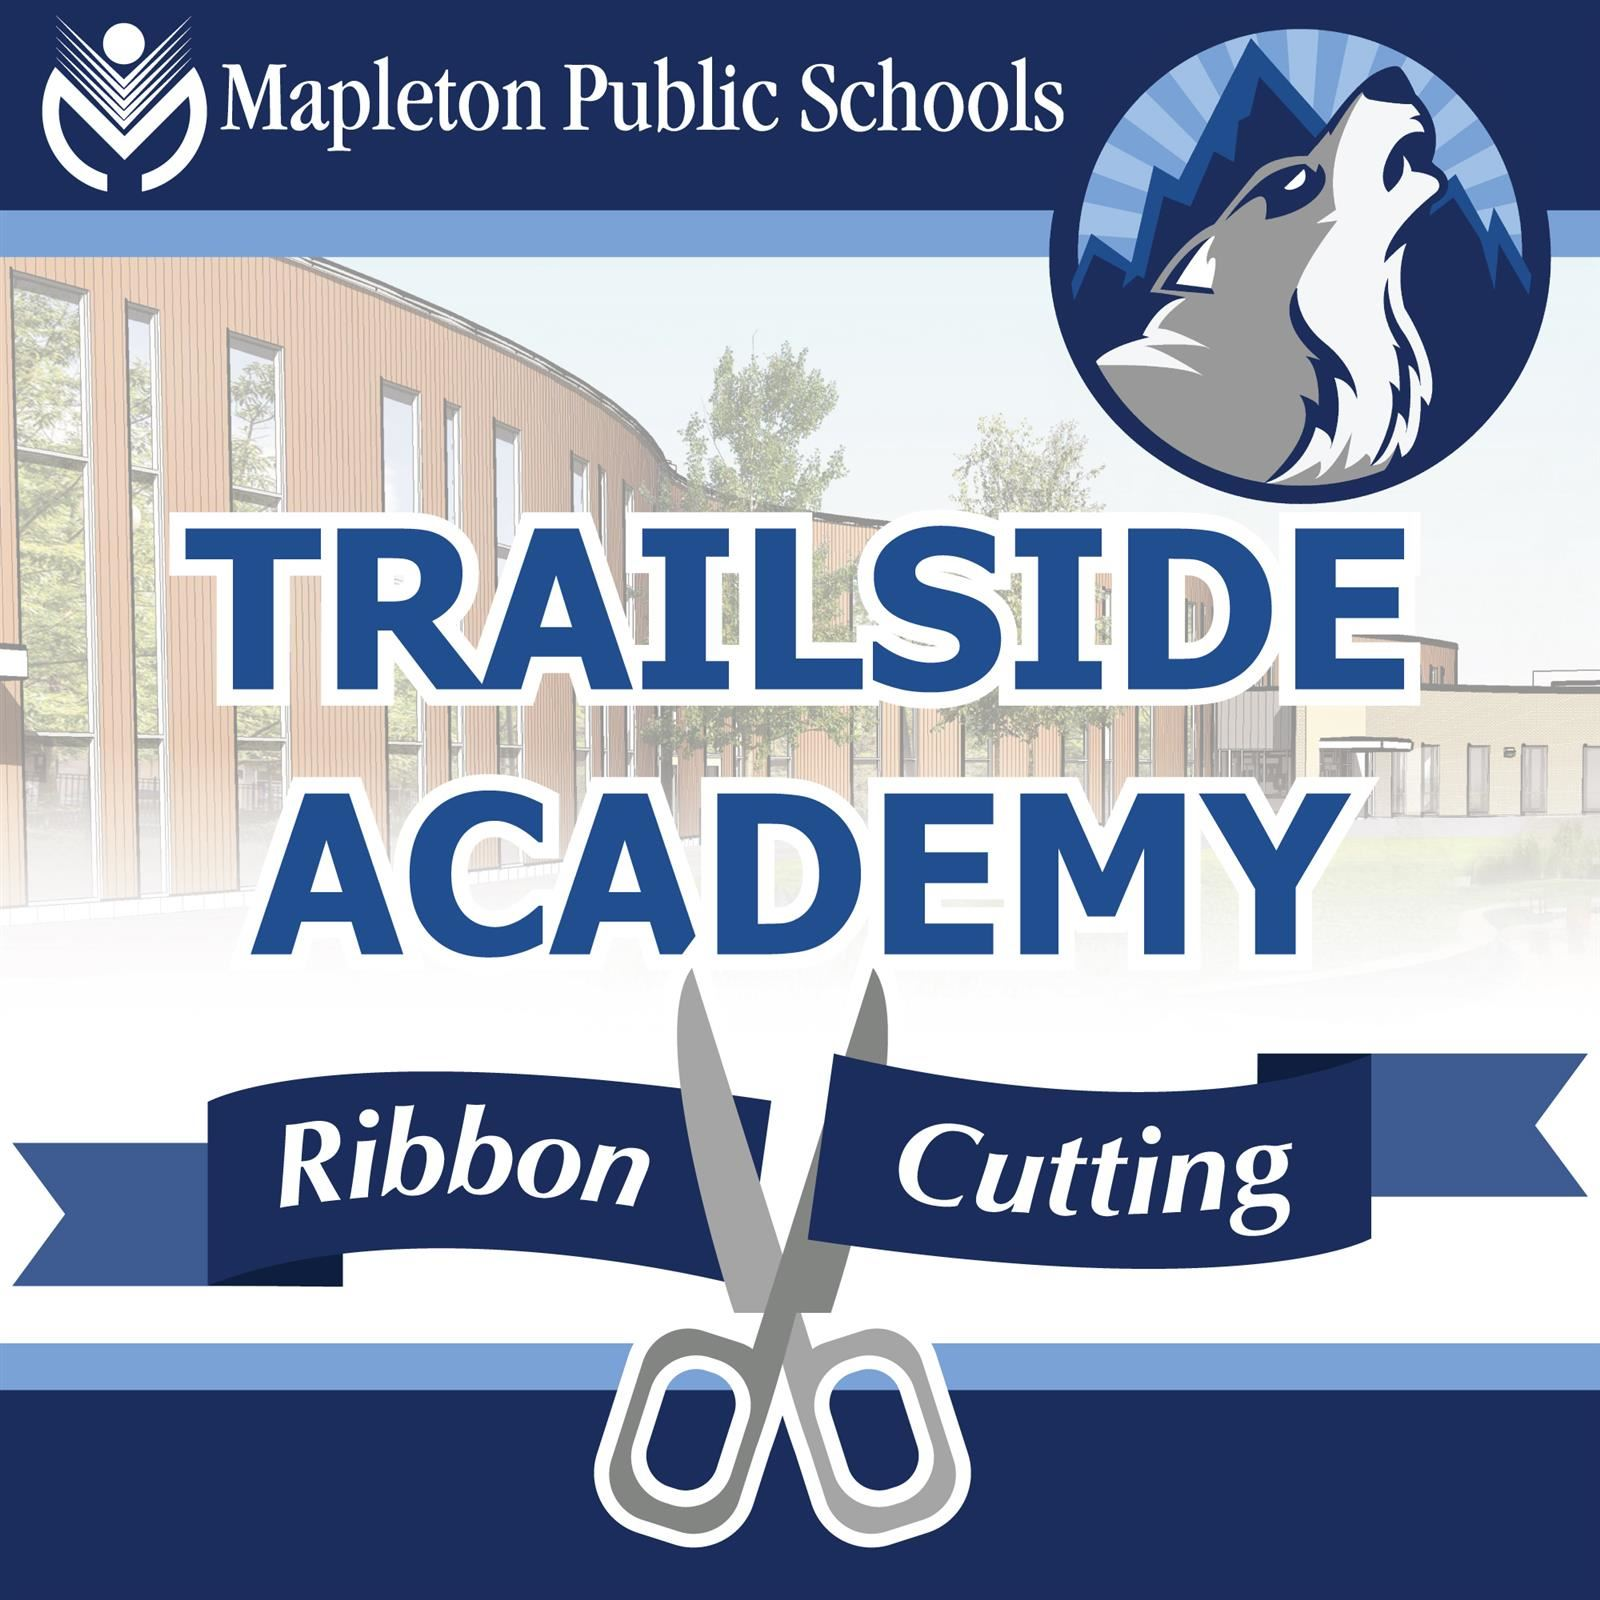 1d9bf7791297 Trailside Academy Ribbon Cutting Ceremony